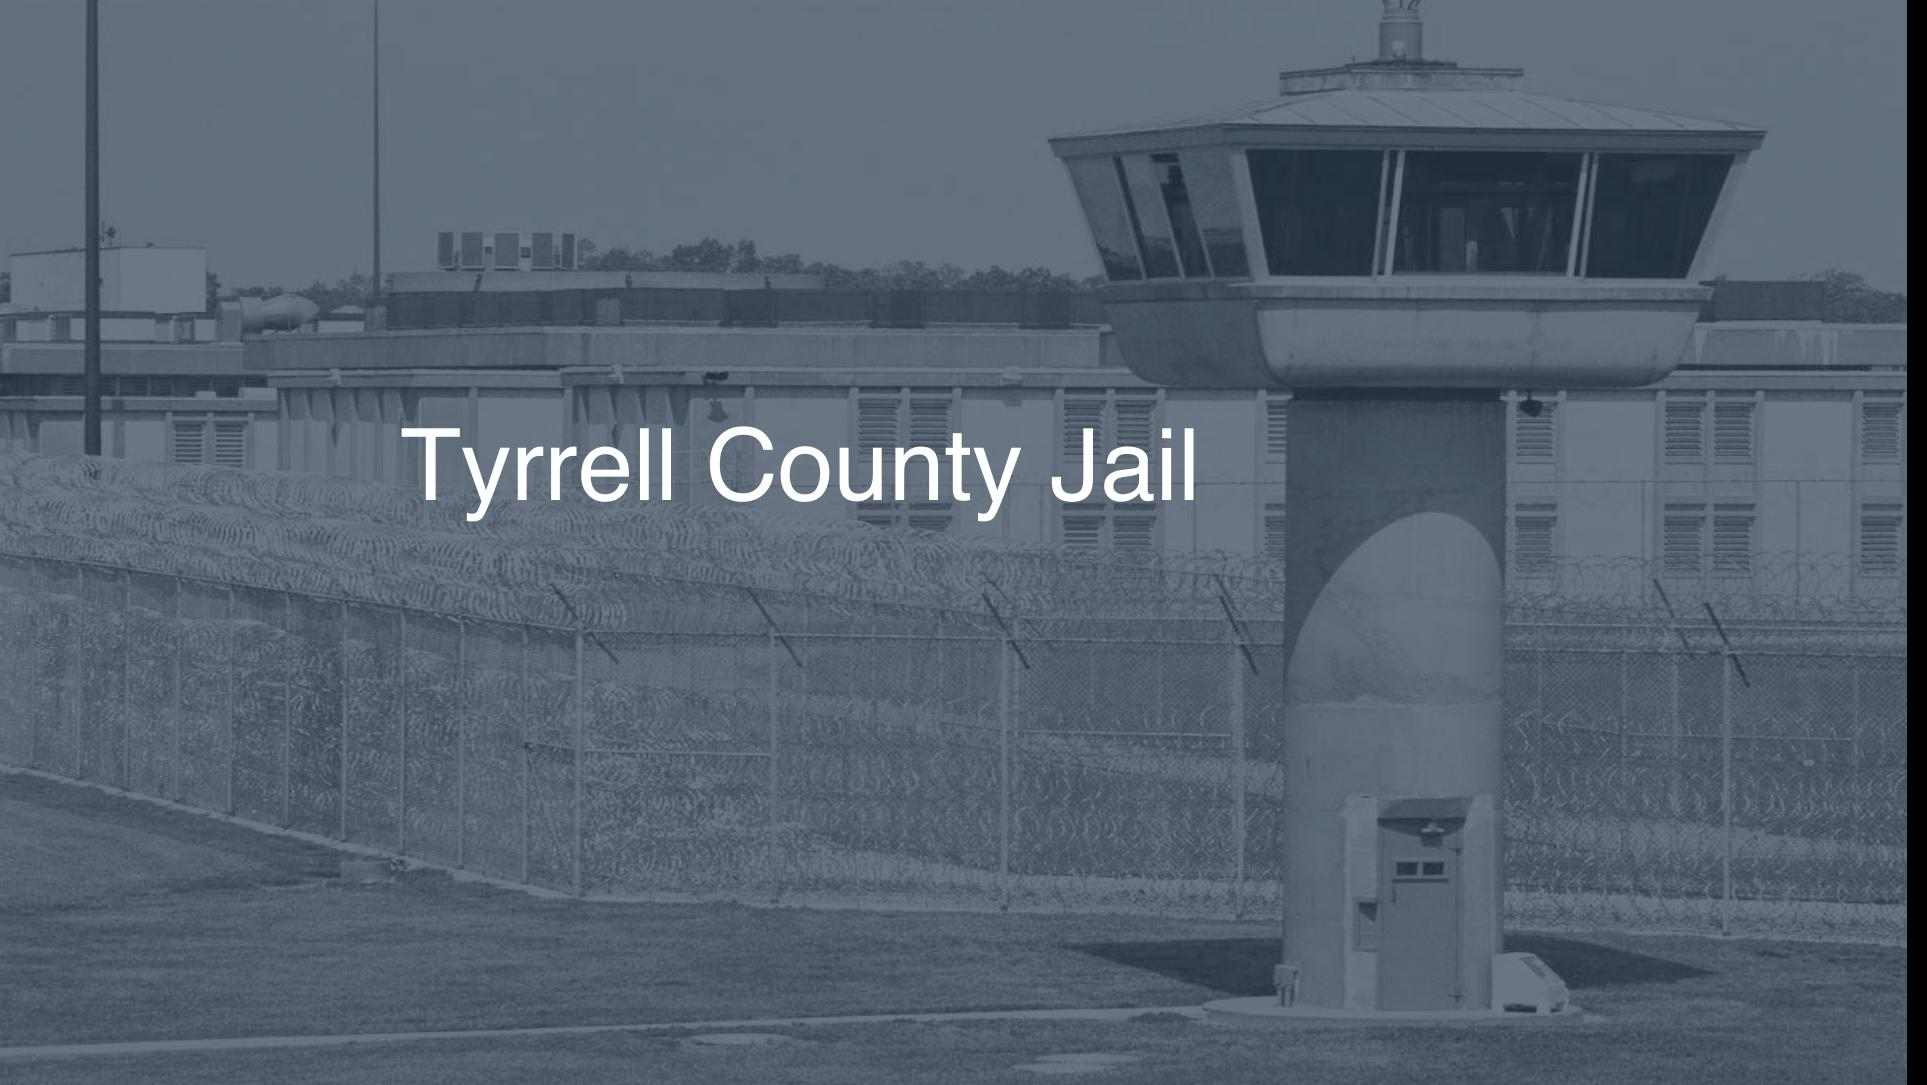 Tyrrell County Jail correctional facility picture